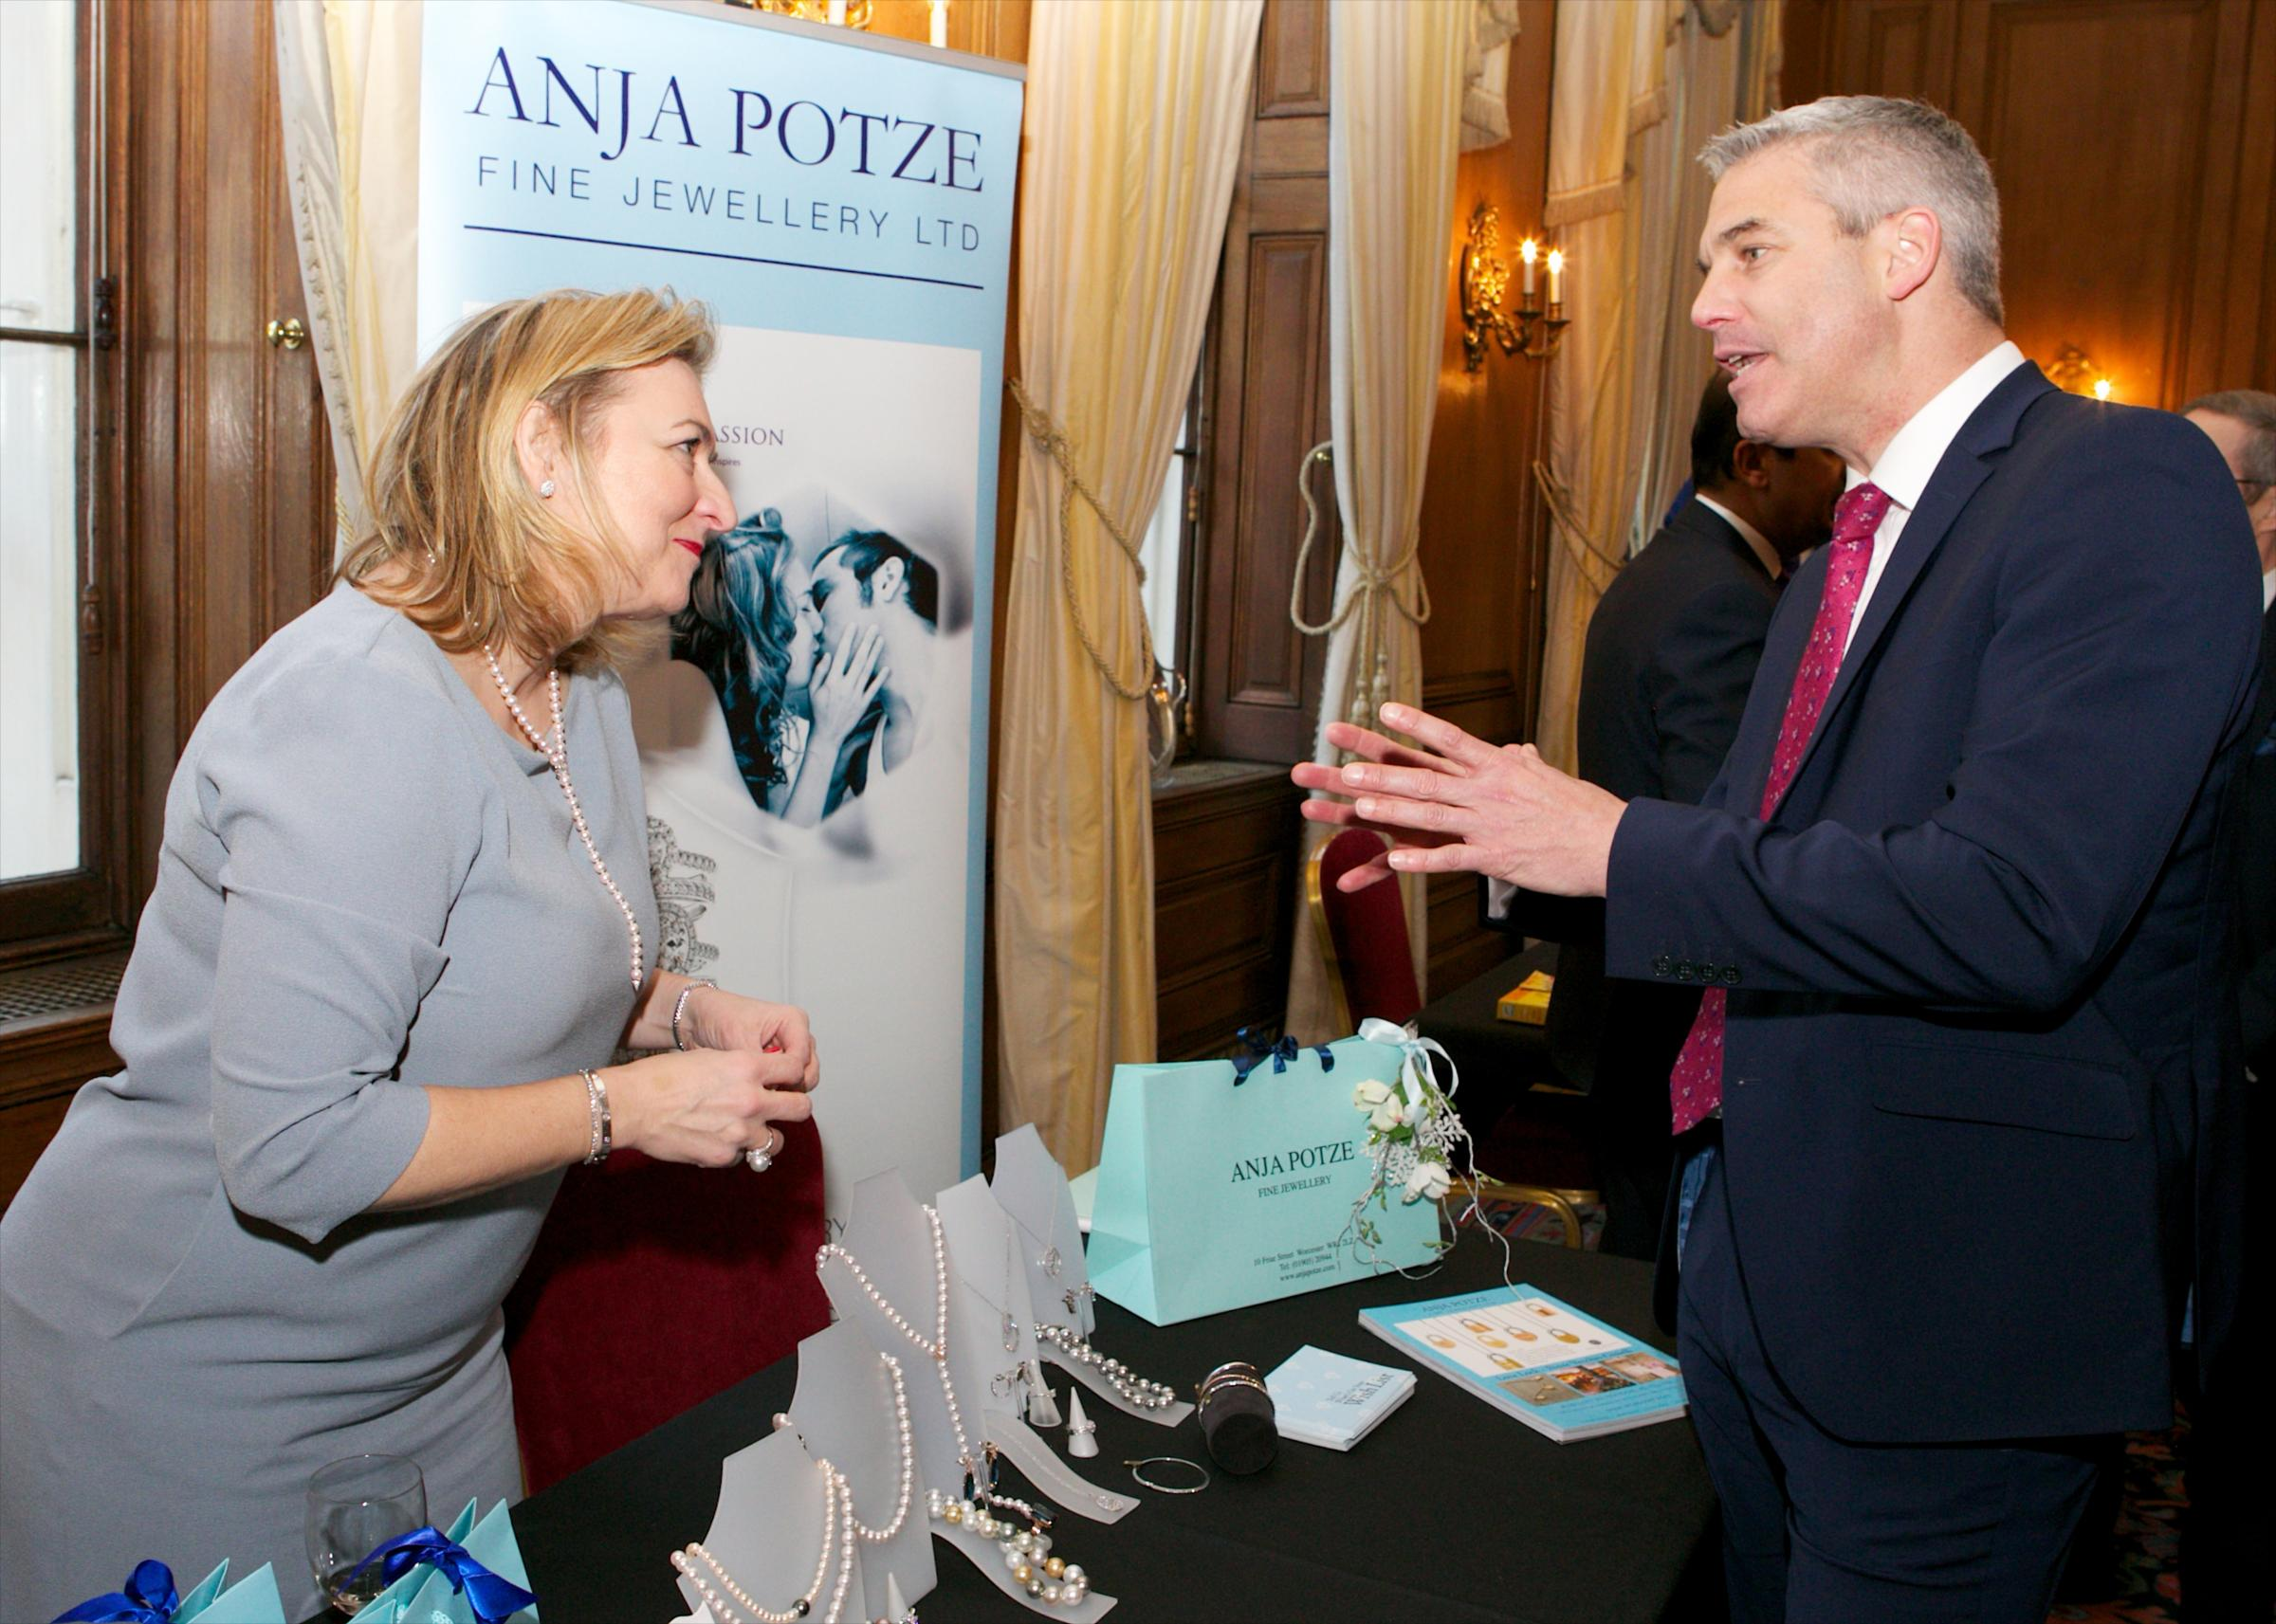 VISIT: Anja Potze visited Downing Street to promote Small Business Saturday, meeting Stephen Barclay MP, Economic Secretary to the Treasury.